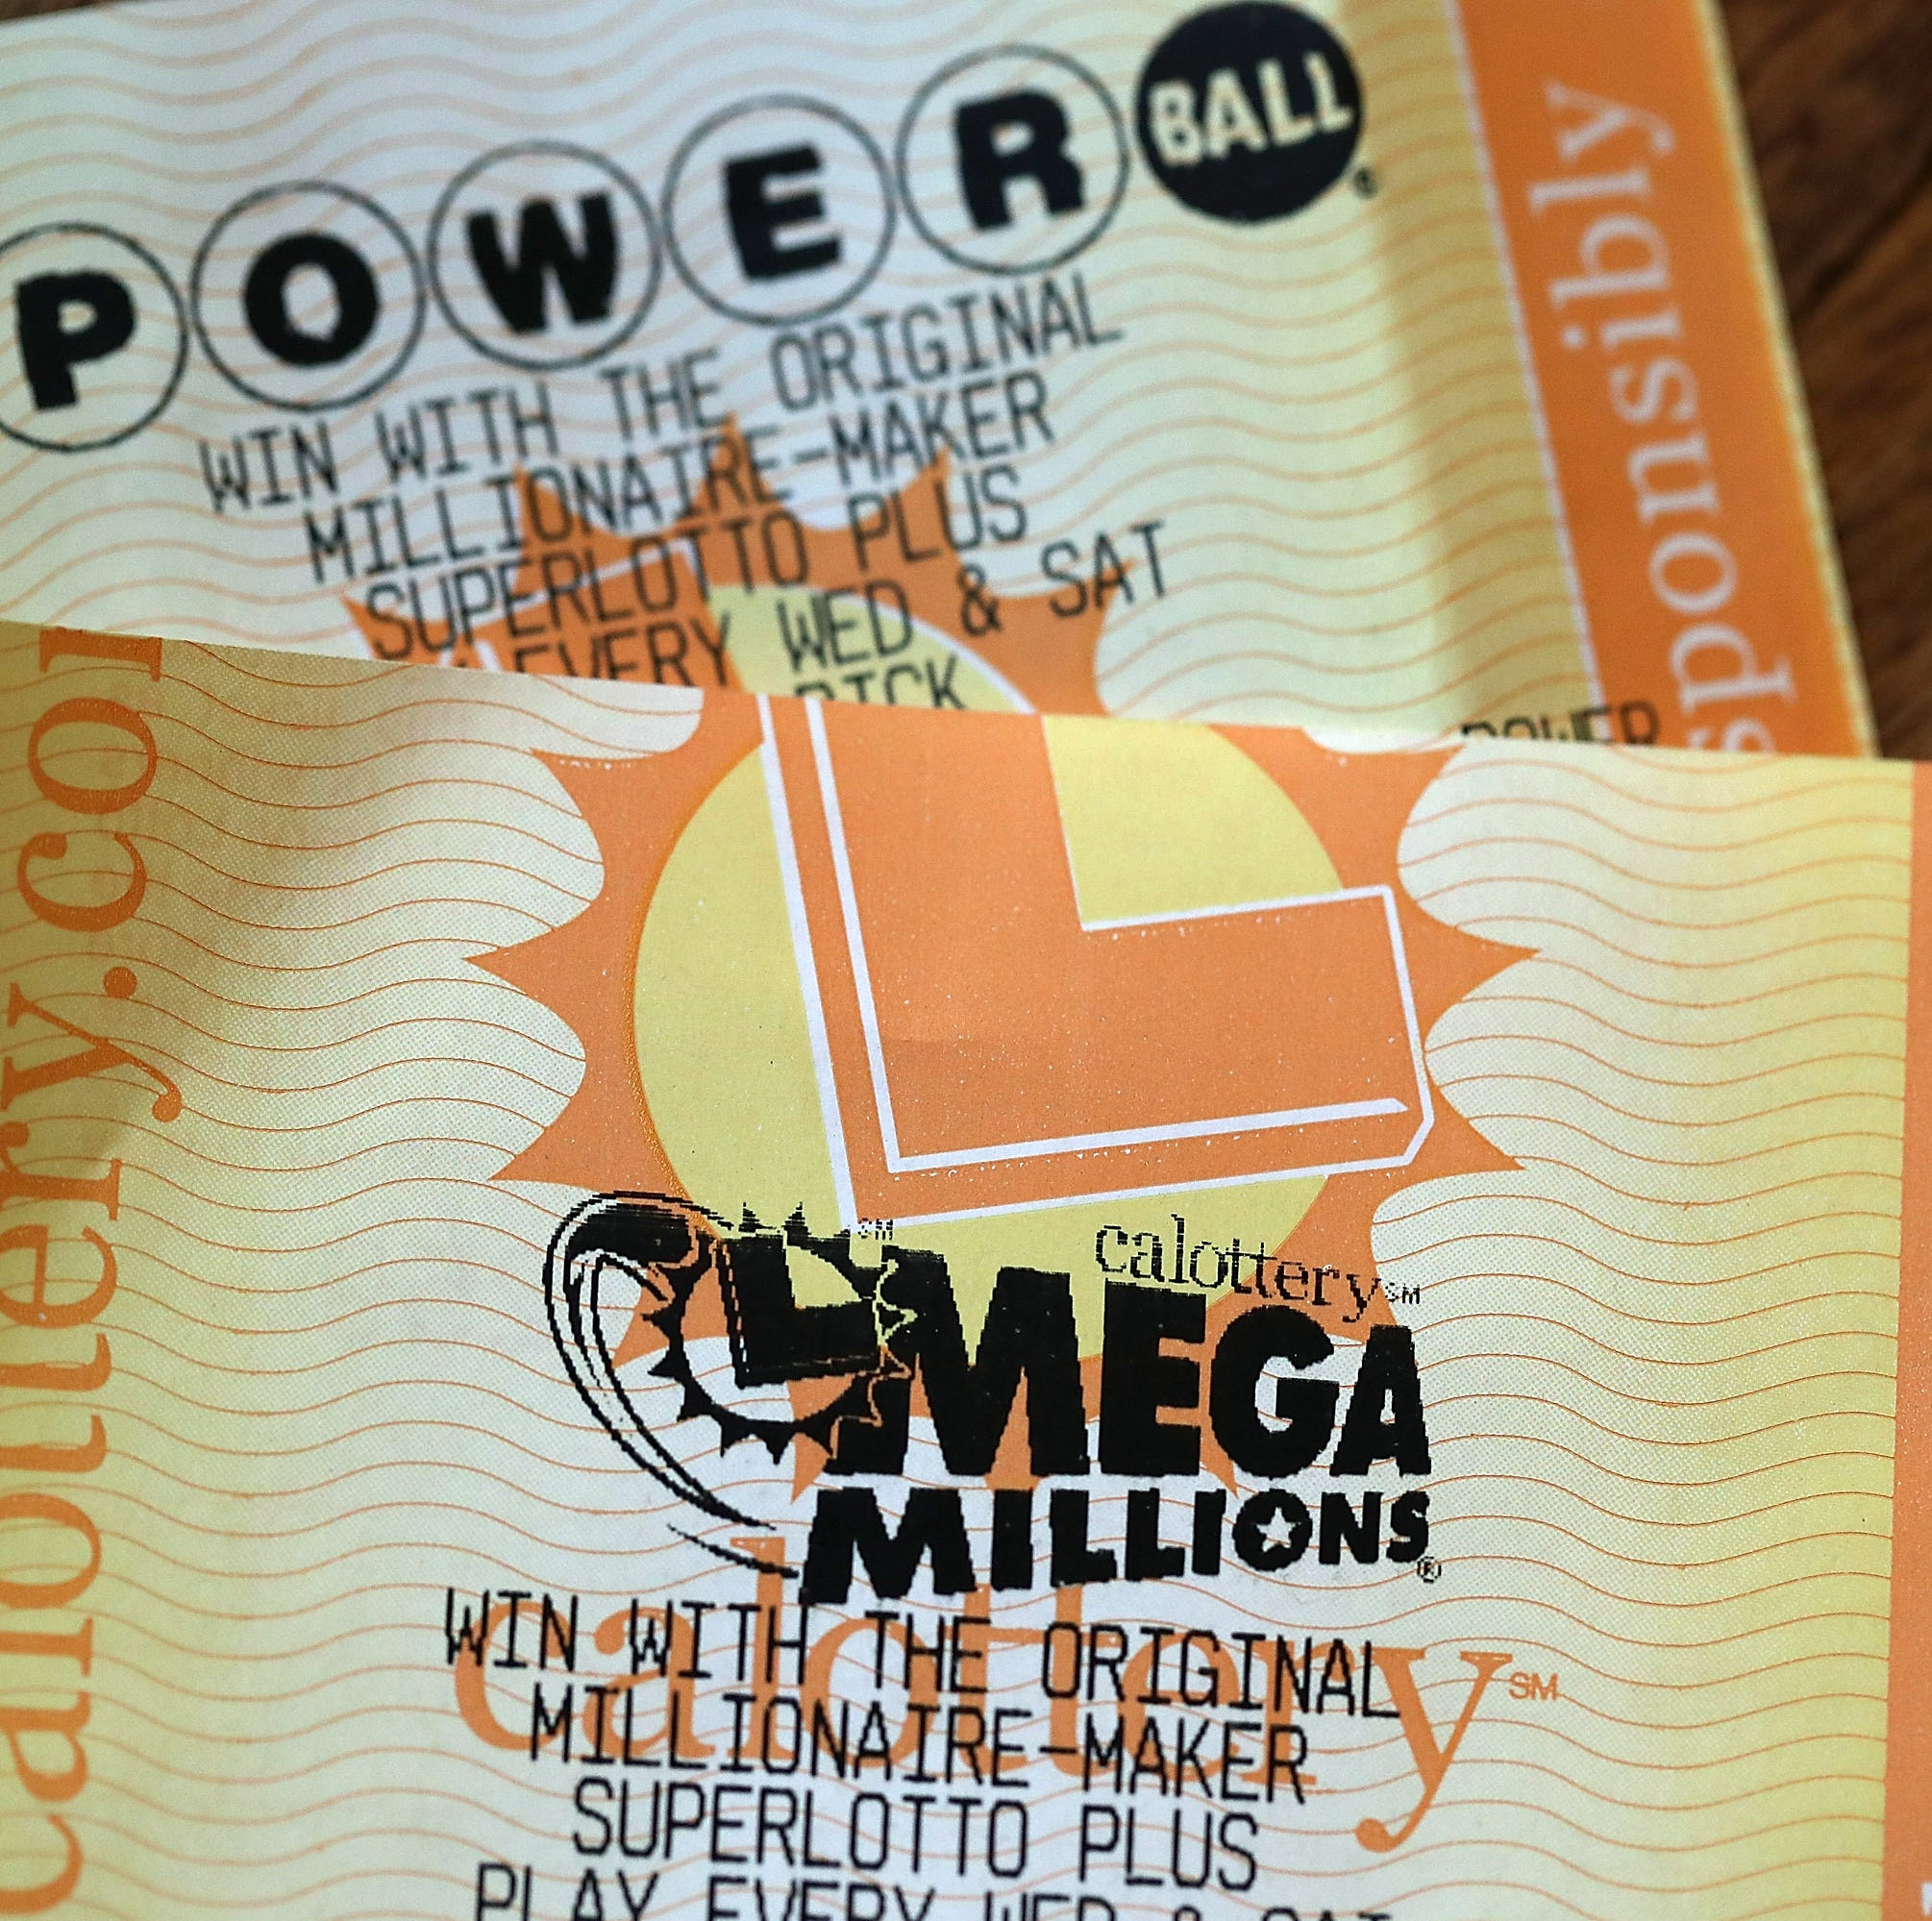 $100,000 Powerball ticket sold in Delaware; no one wins jackpot